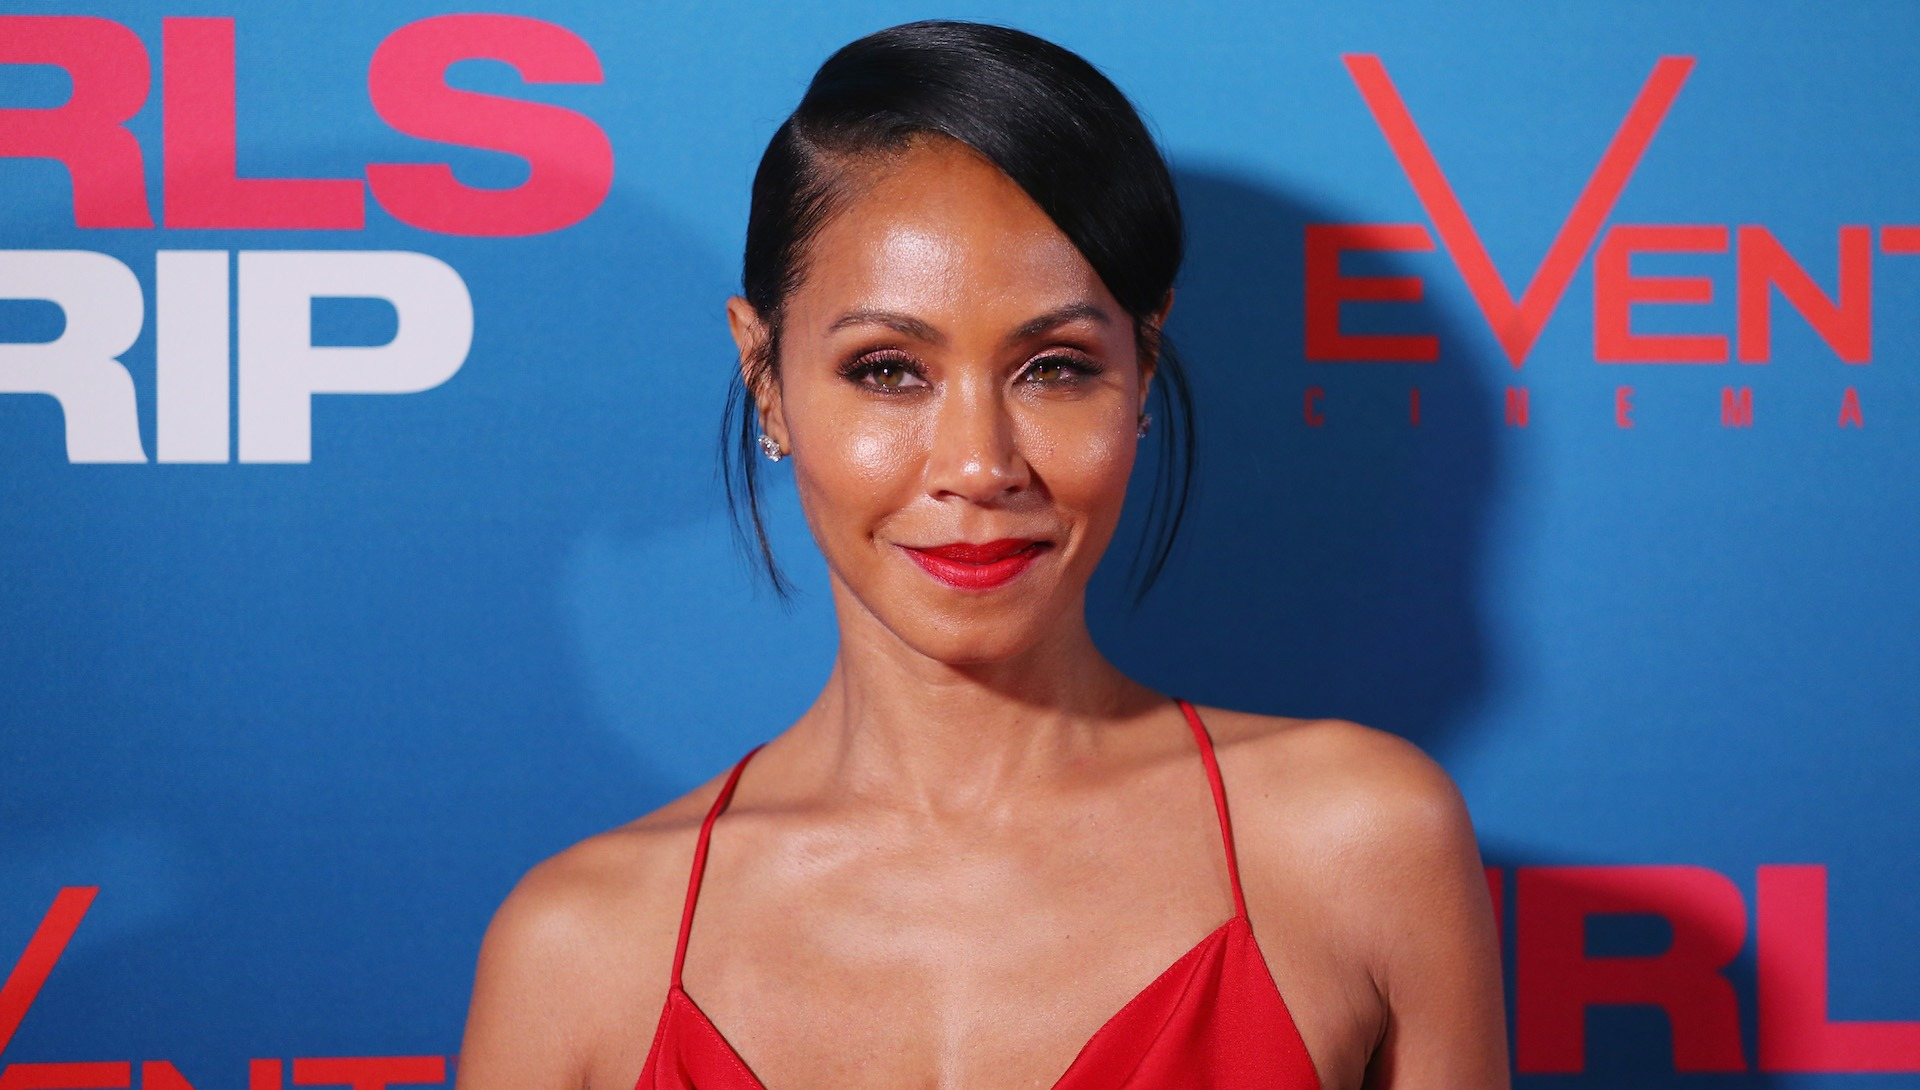 Jada Pinkett comes out in support of R. Kelly's victims